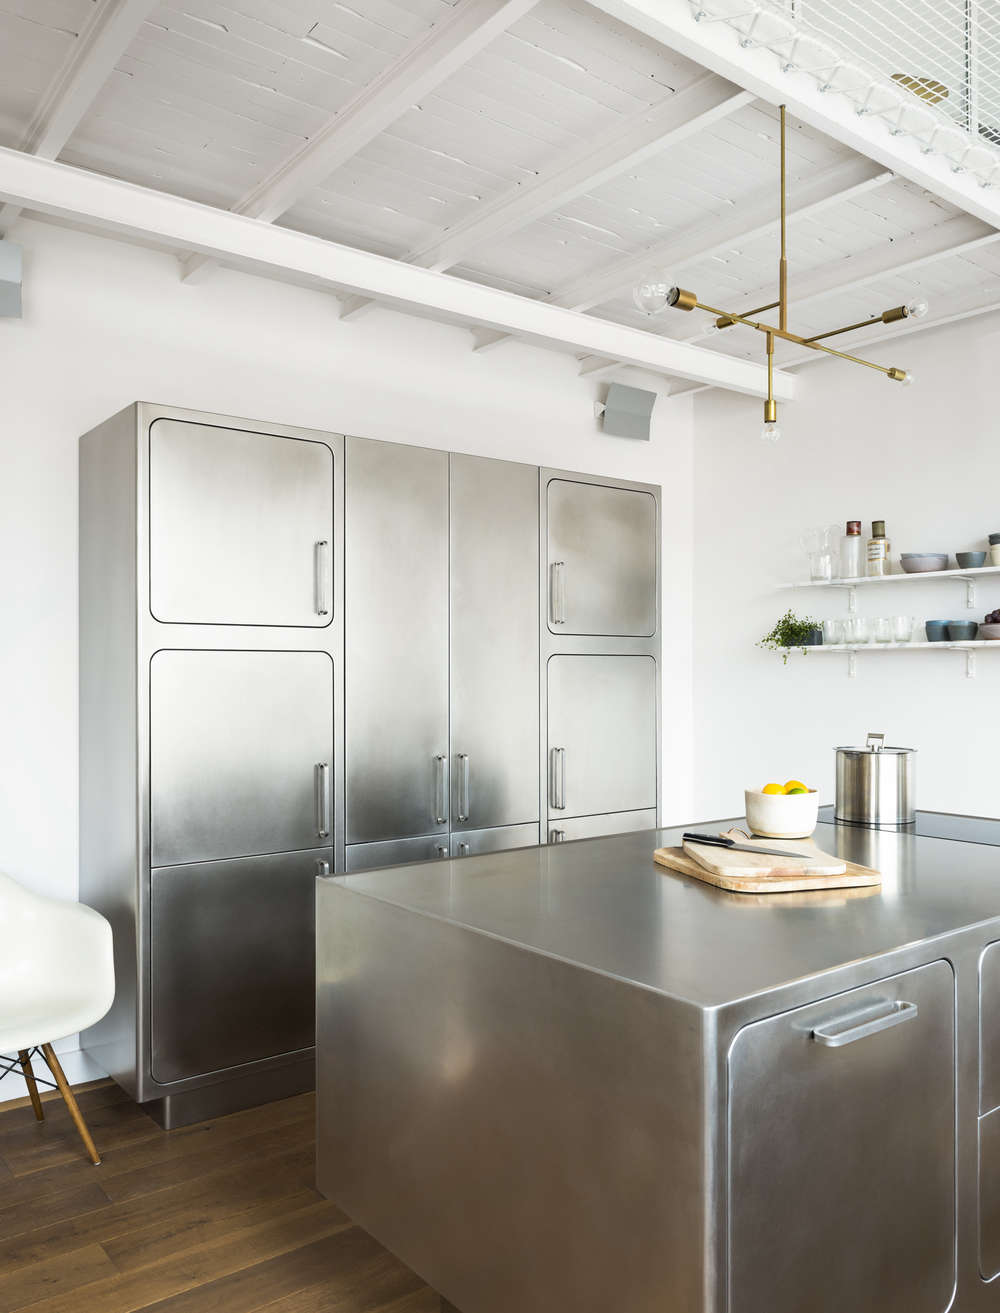 Kitchen of the Week: An All-Stainless Design in a Paris Loft ...